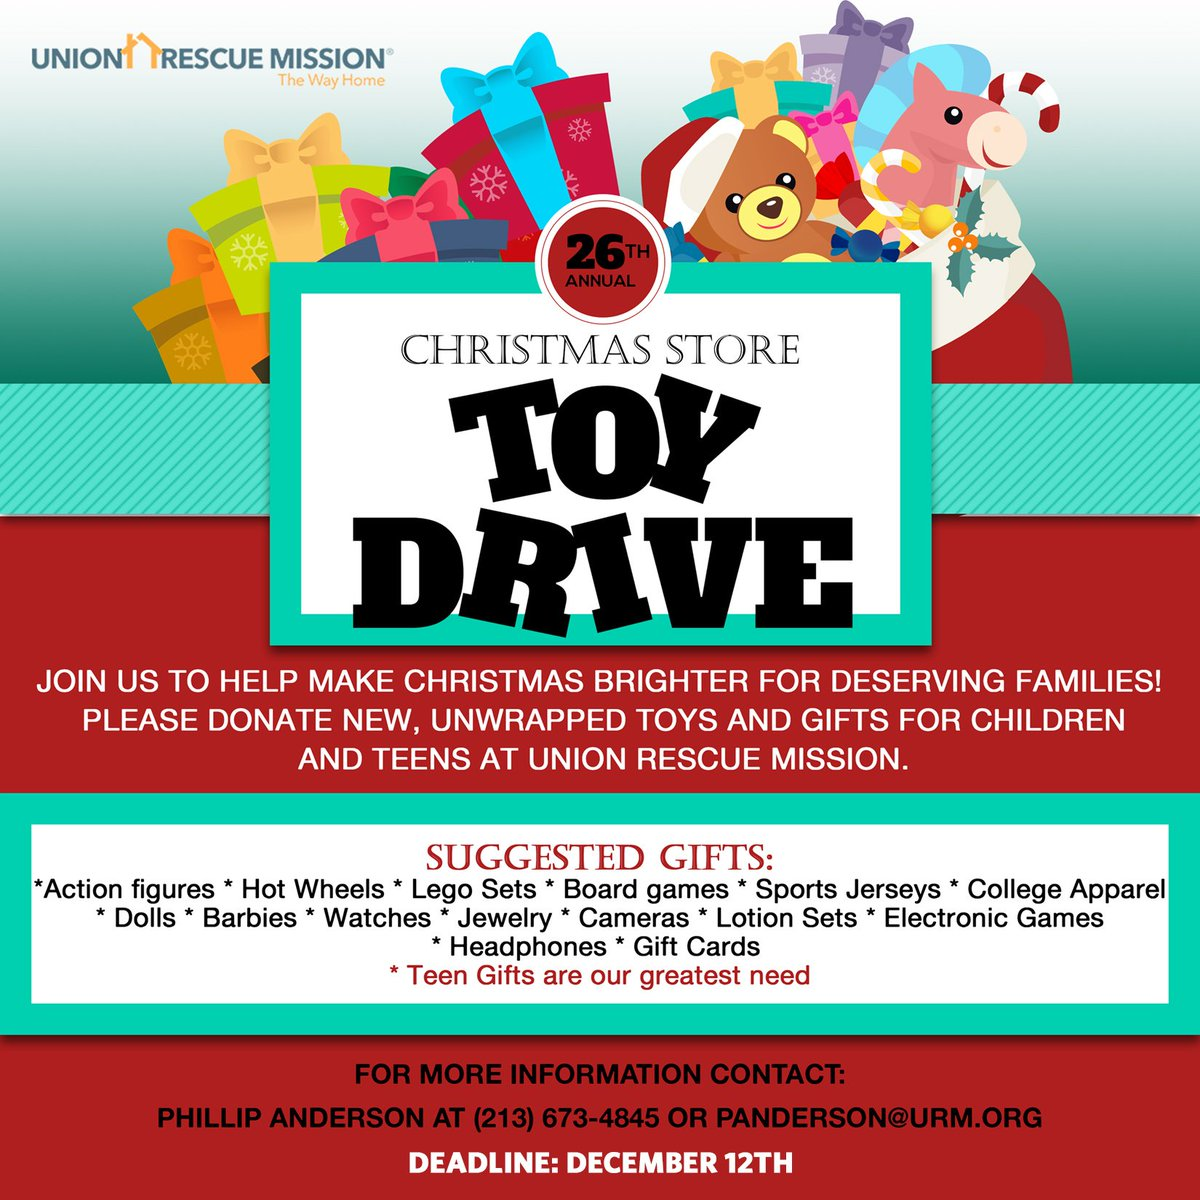 union rescue mission on twitter we are still accepting toy donations for the urm christmas store please contact phil anderson for more information on - Toy Donations For Christmas